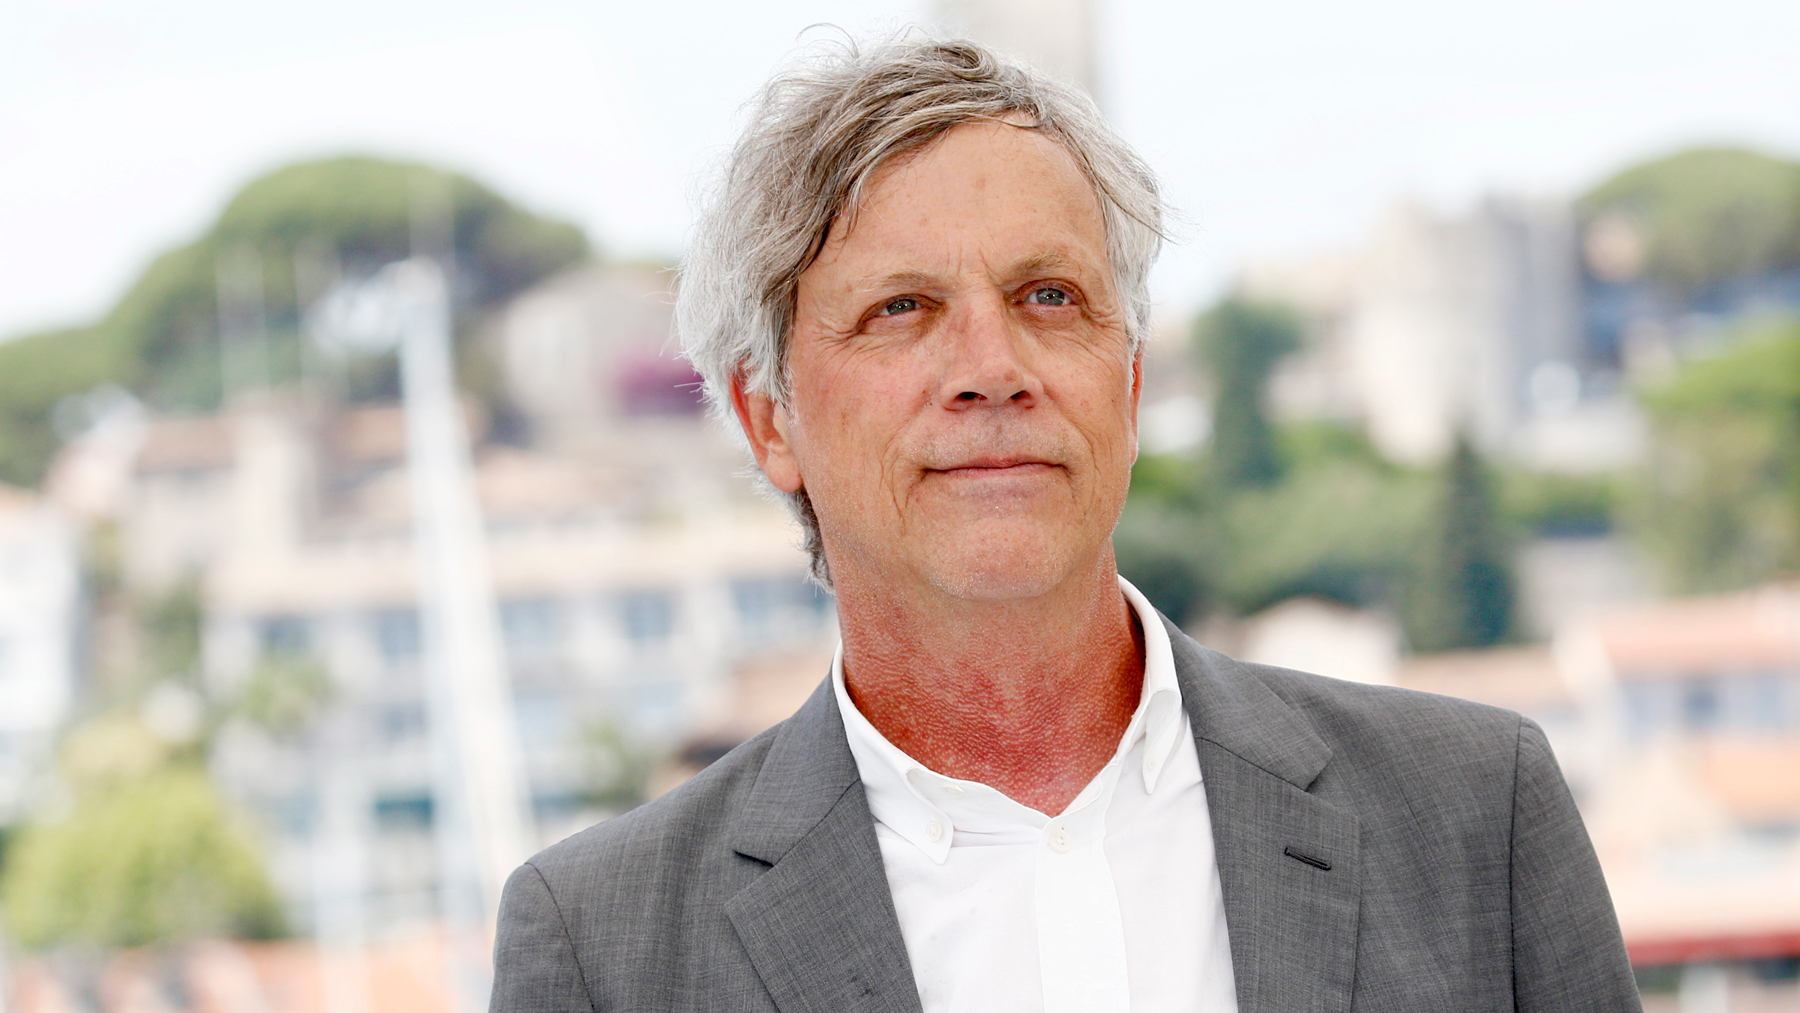 Todd Haynes at the premiere of 'The Velvet Underground' during the 74th Cannes Film Festival in July. - Credit: P. Lehman/Barcroft Media via Getty Images